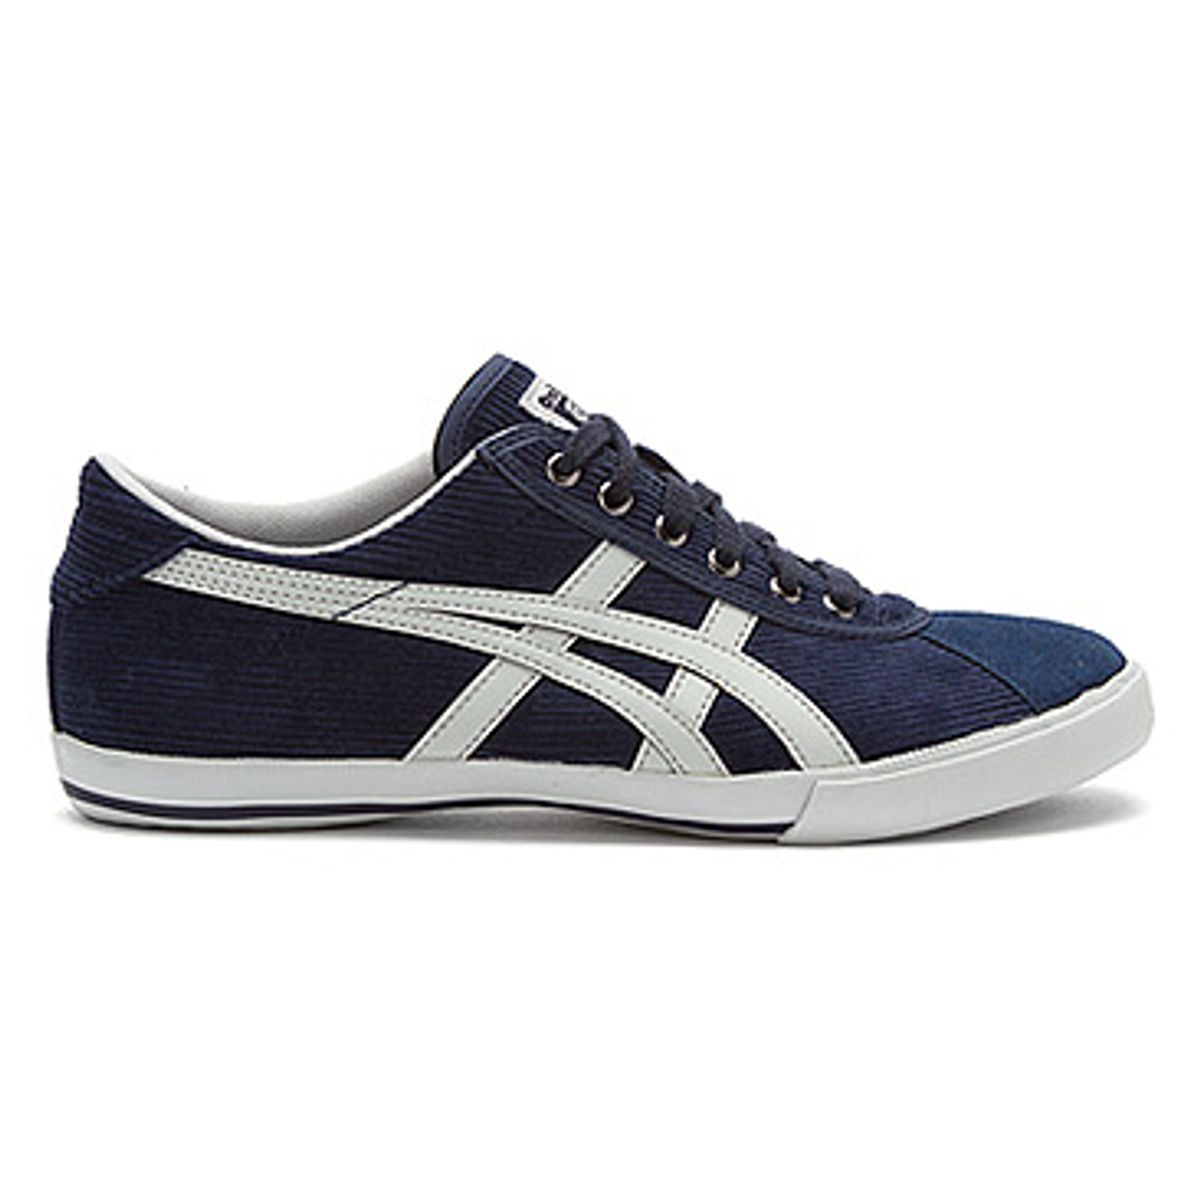 Tenis-Onitsuka-Tiger-Rotation-77---Unissex---Cinza